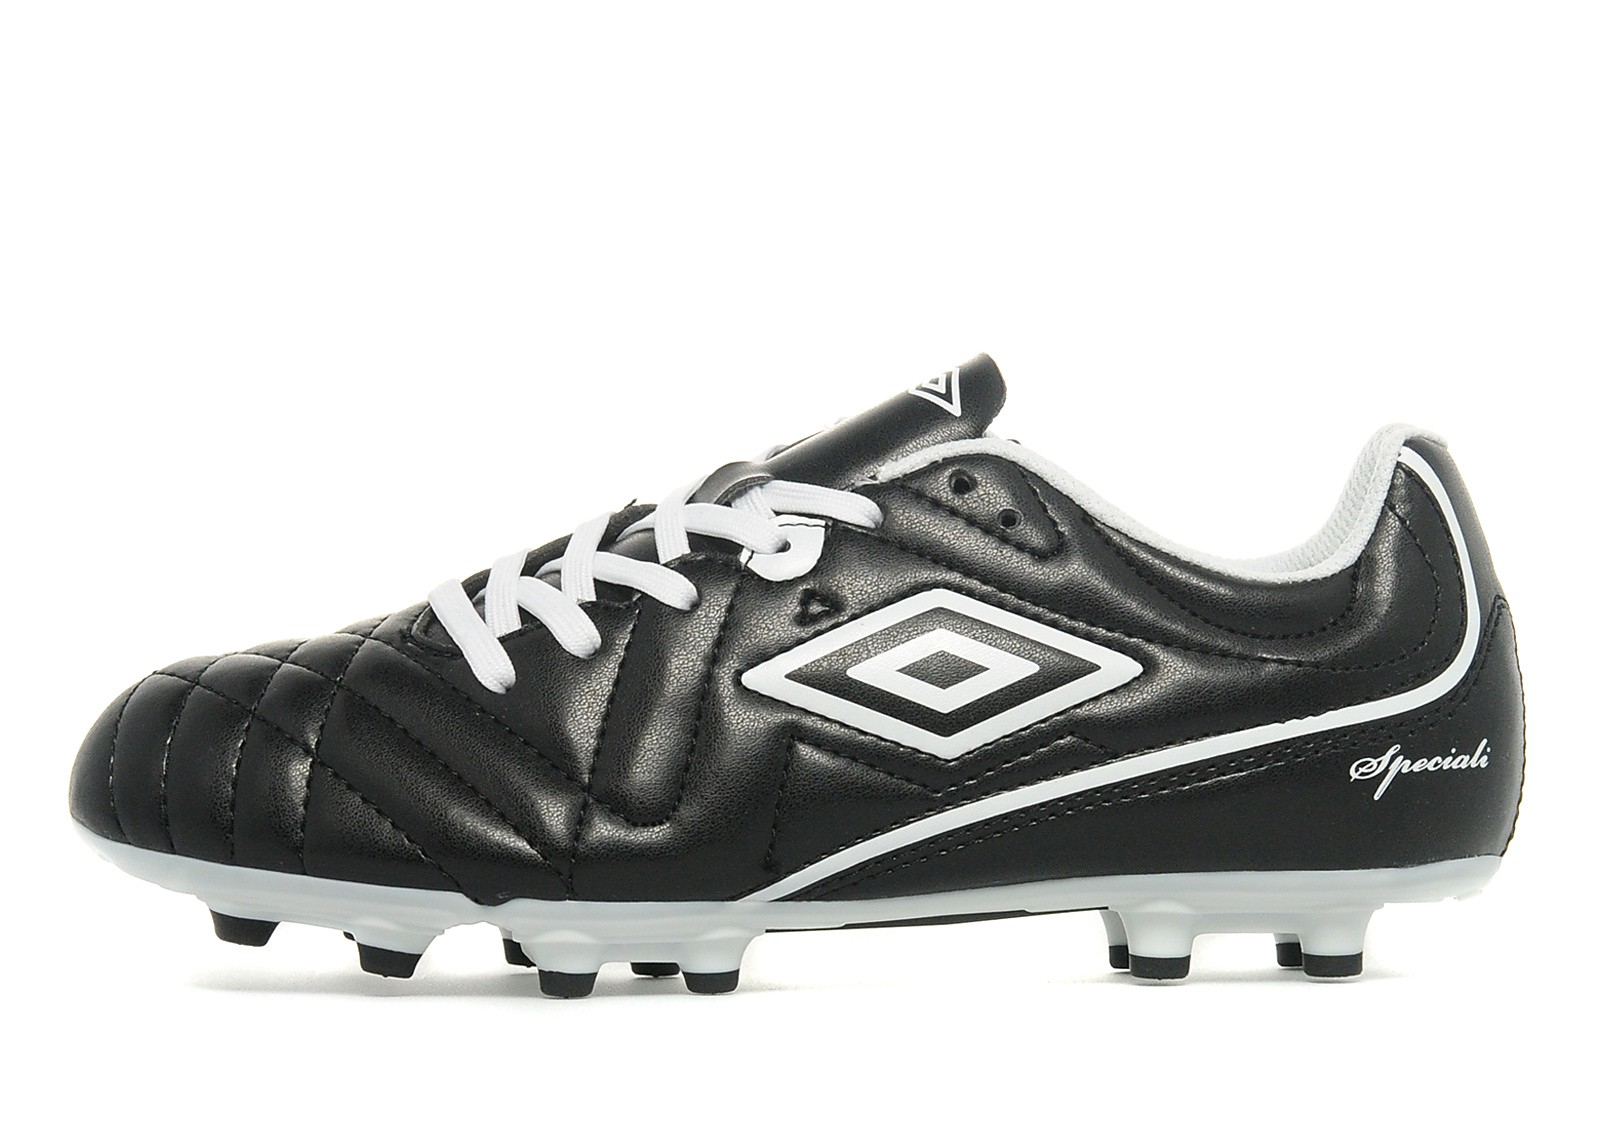 Kids Umbro Speciali 4 FG Junior Black/White